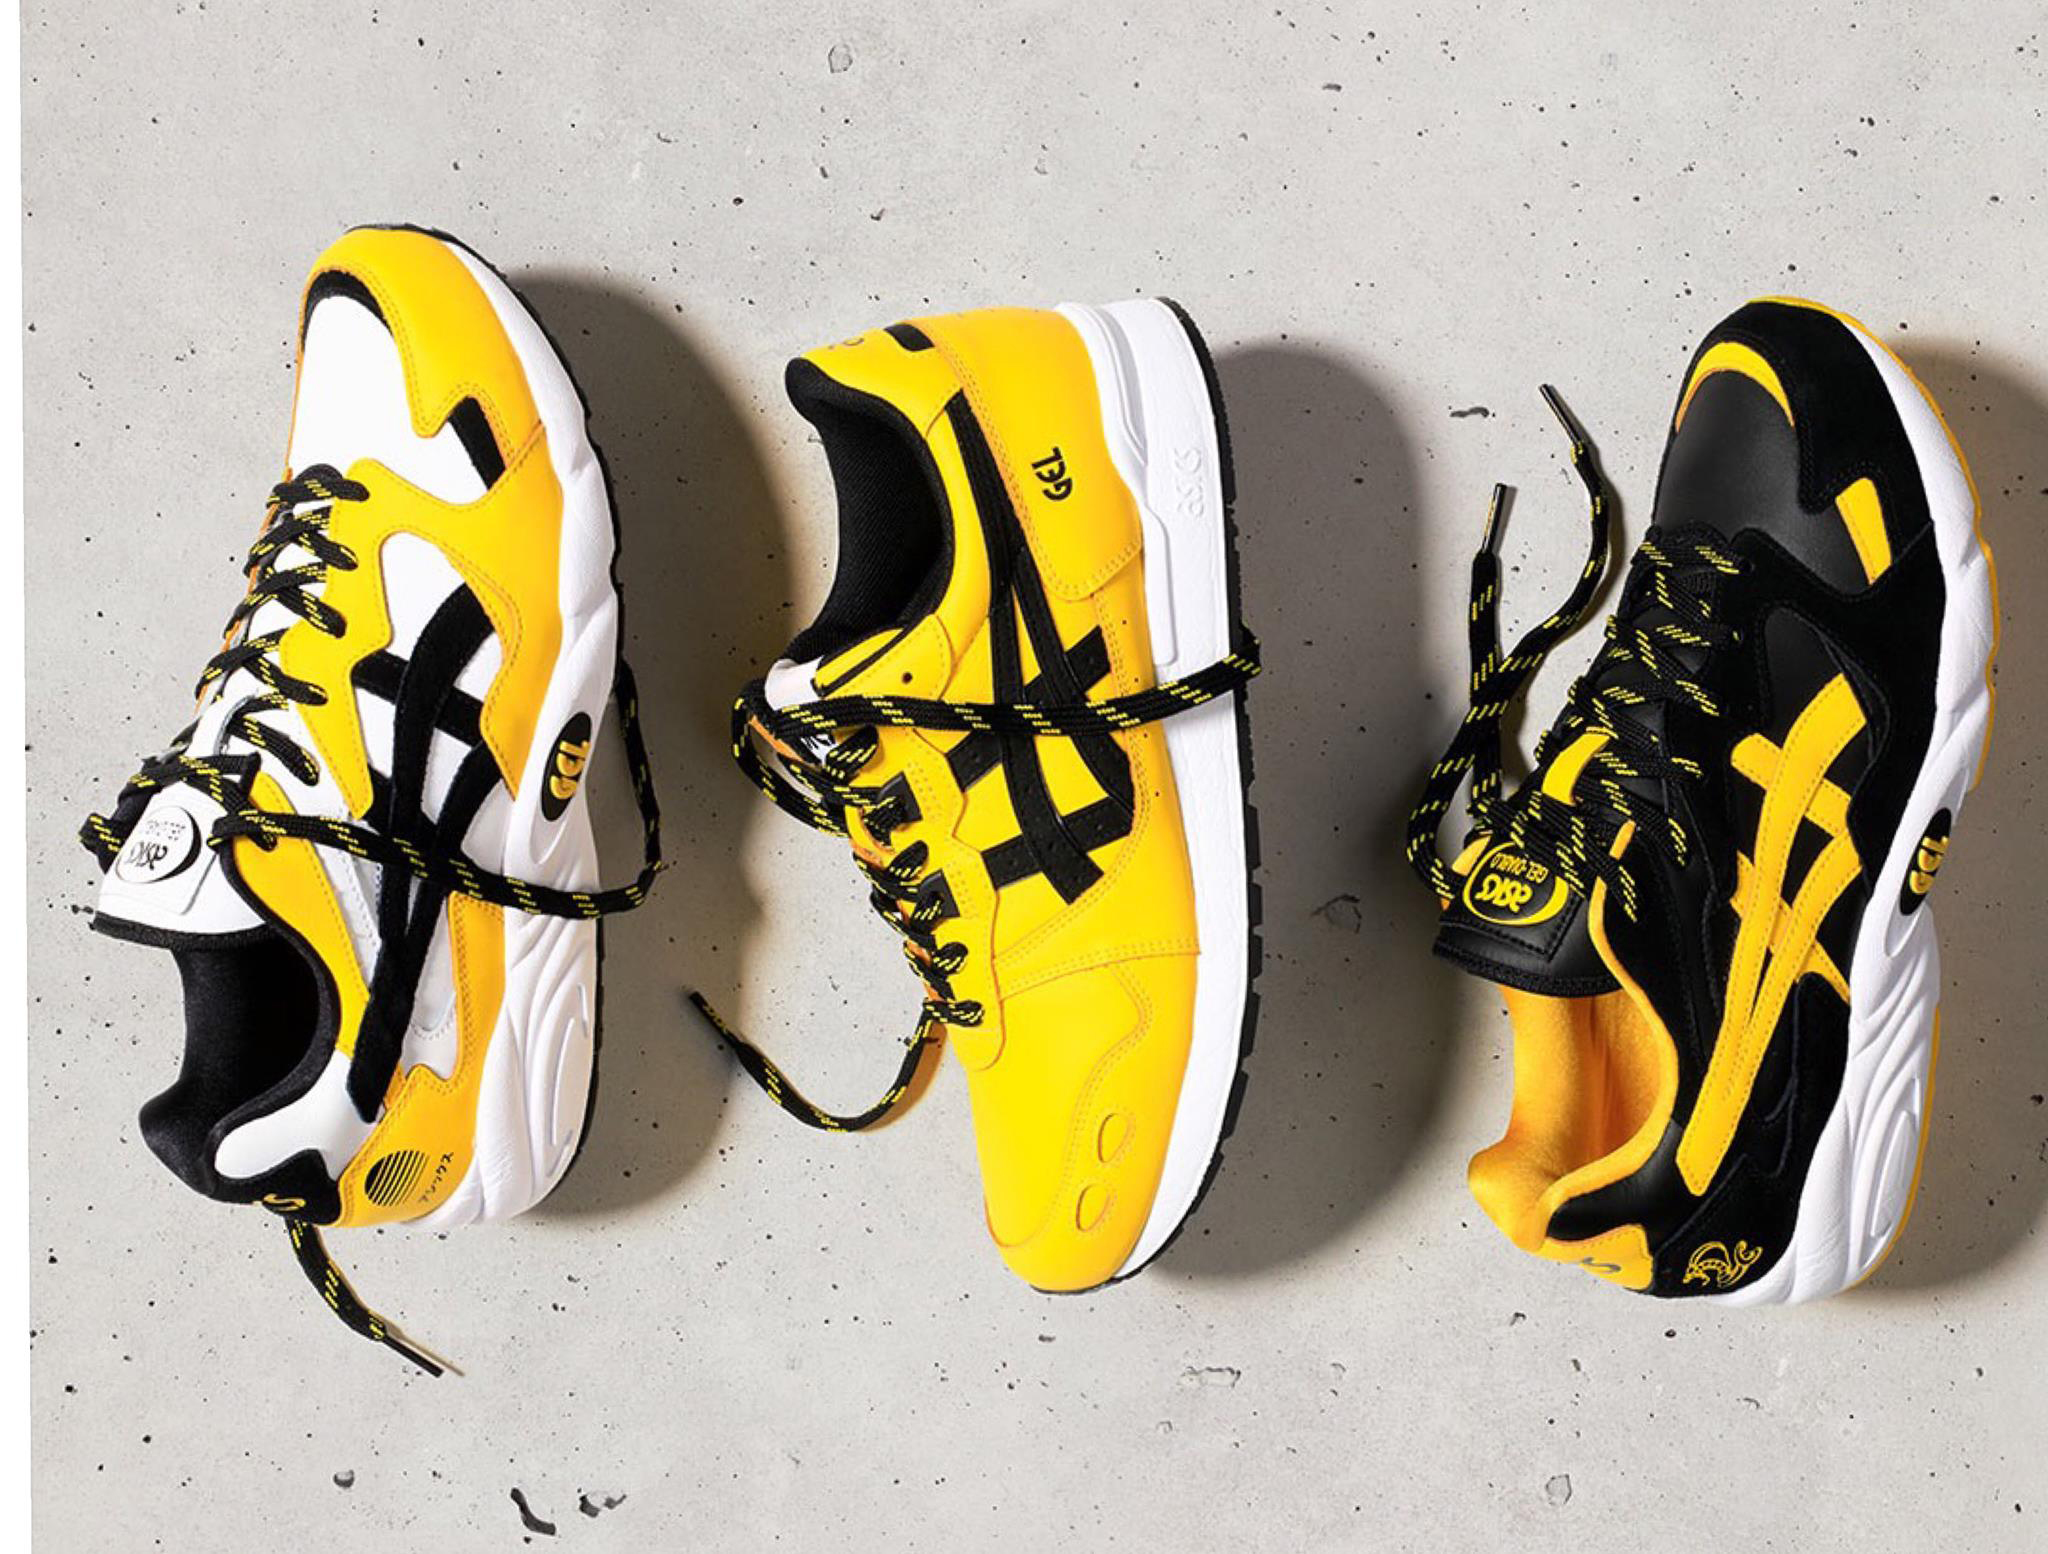 quality design 1ba55 313fd Asics Tiger Welcome to the Dojo Shoes and Clothing Inspired ...